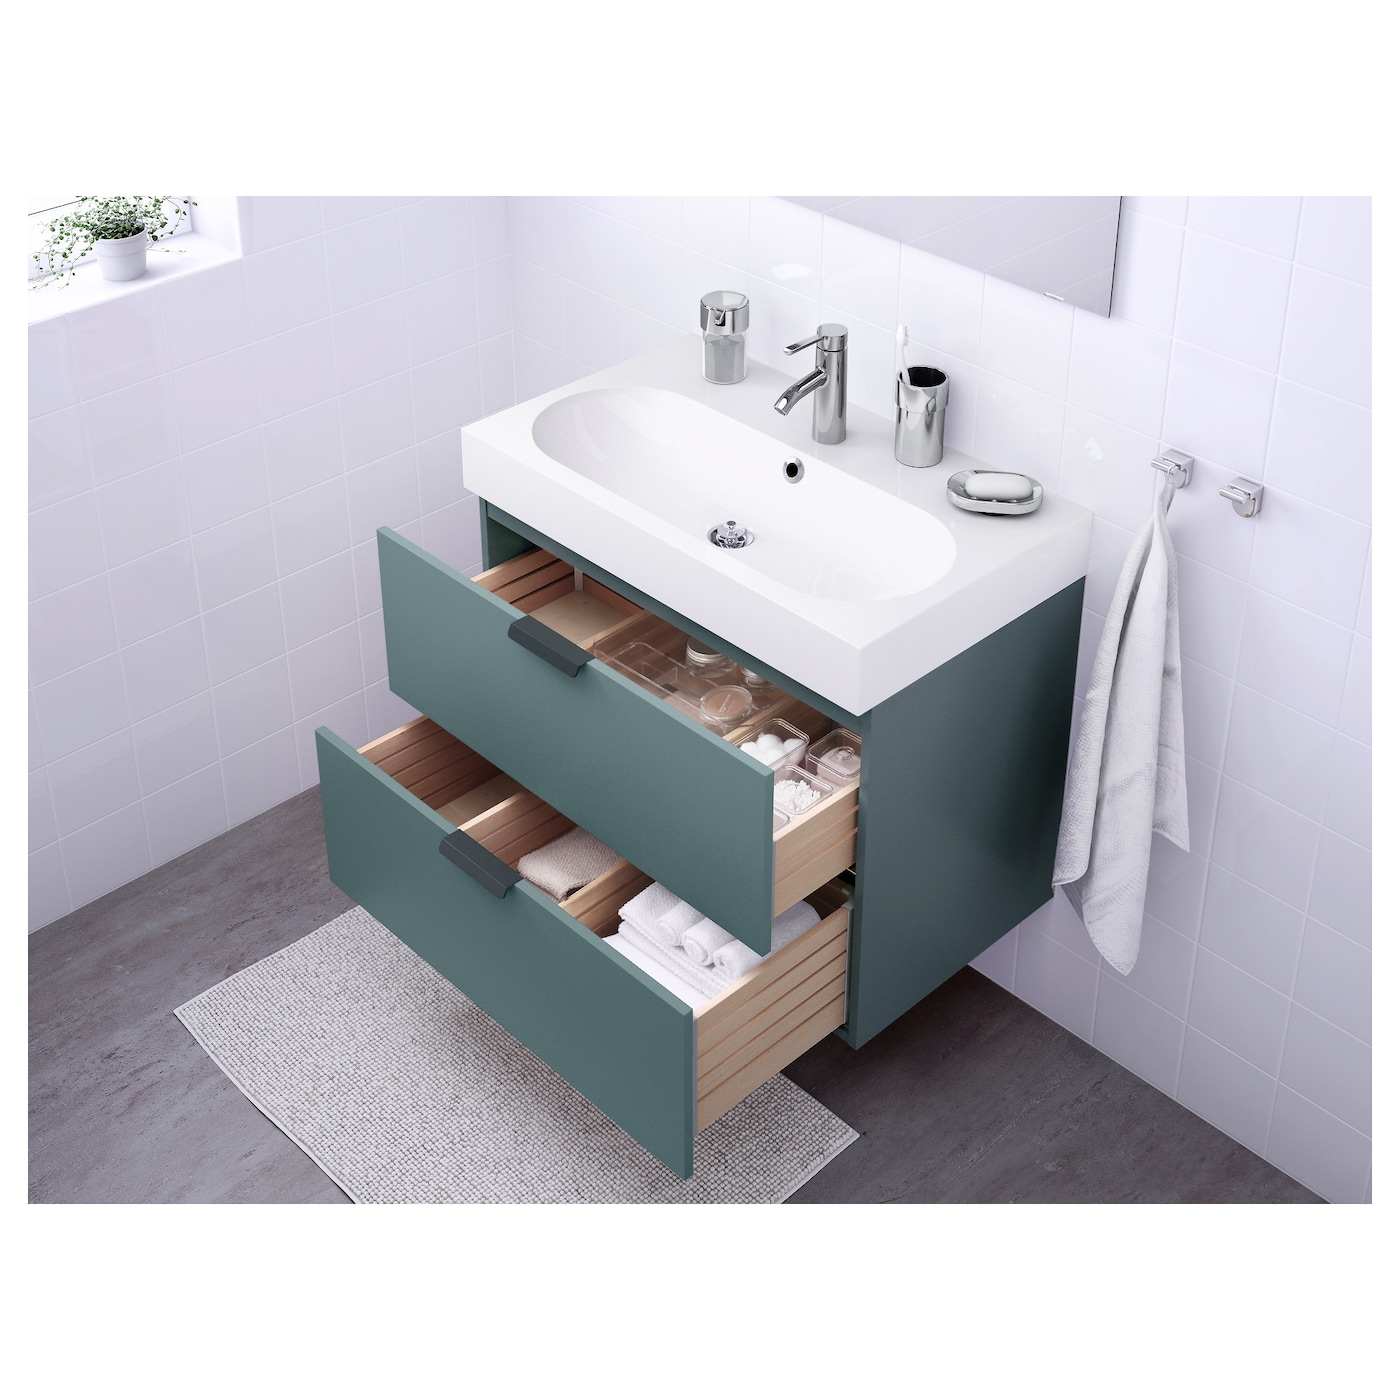 br viken godmorgon meuble lavabo 2tir gris turquoise 80 x 48 x 68 cm ikea. Black Bedroom Furniture Sets. Home Design Ideas